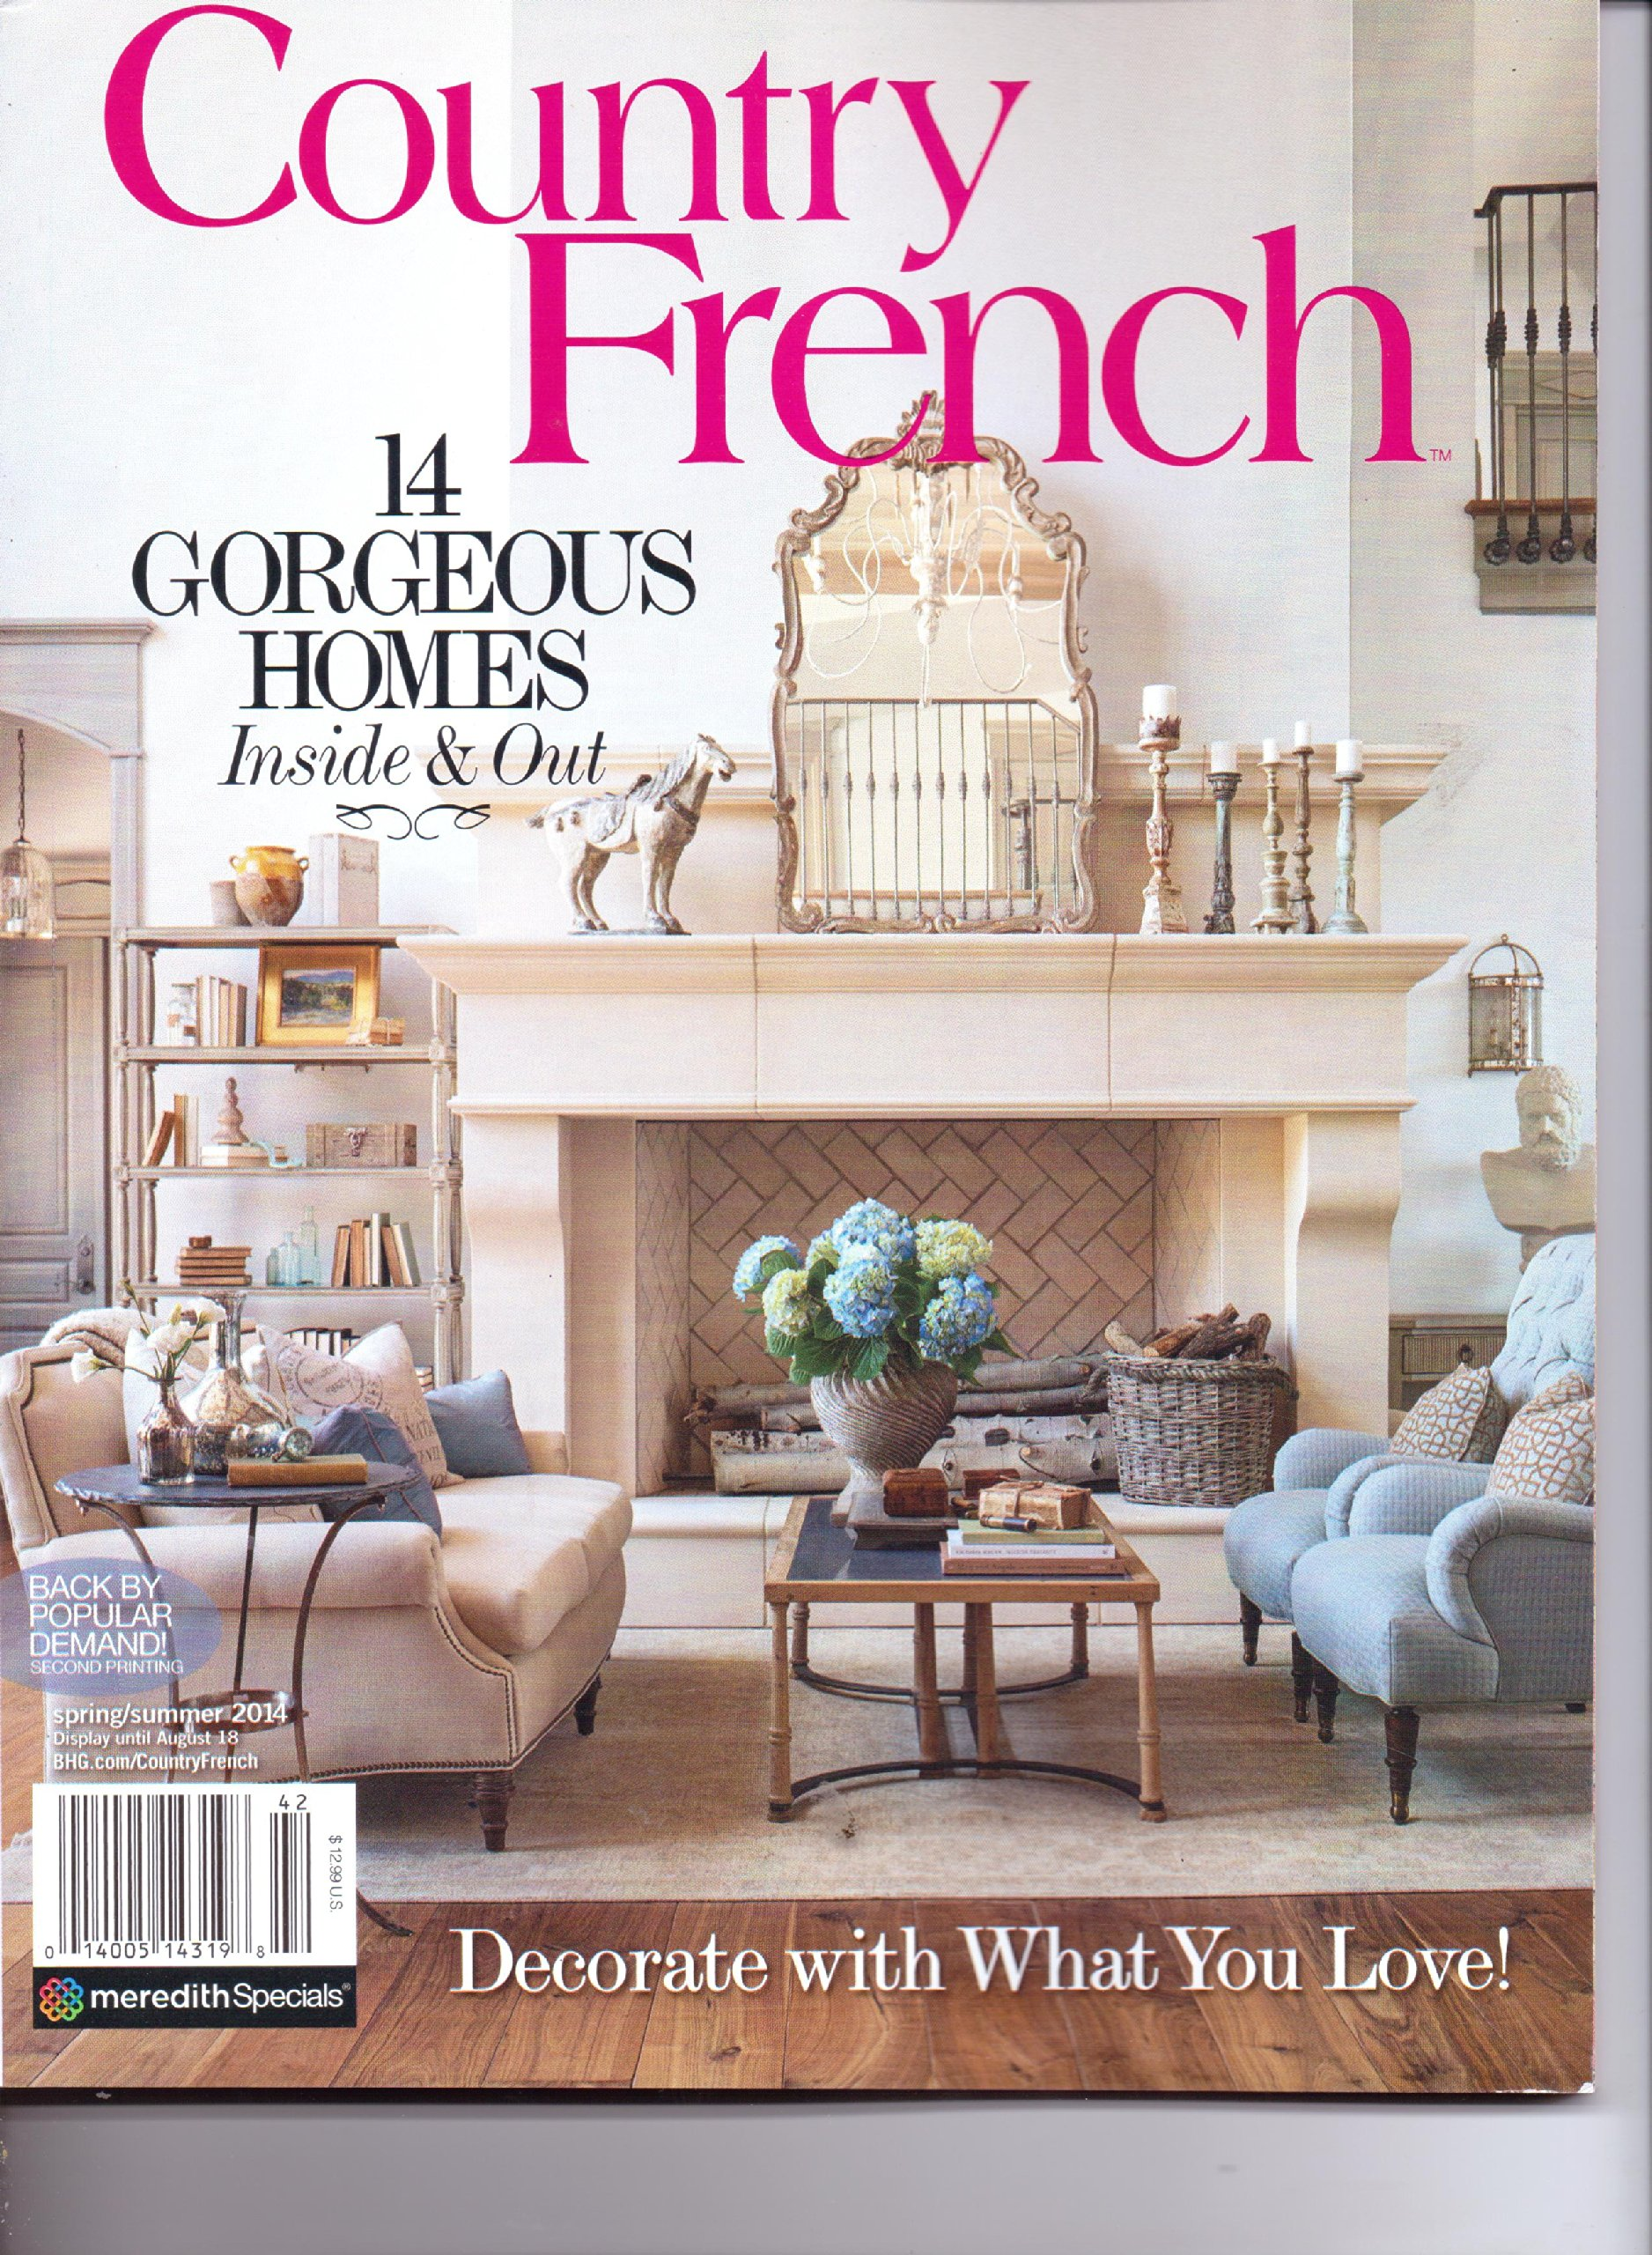 French Country Style Magazine Part - 17: COUNTRY FRENCH Magazine - 14 Gorgeous Homes Inside U0026 Out. Spring/Summer  2014.: Amazon.com: Books